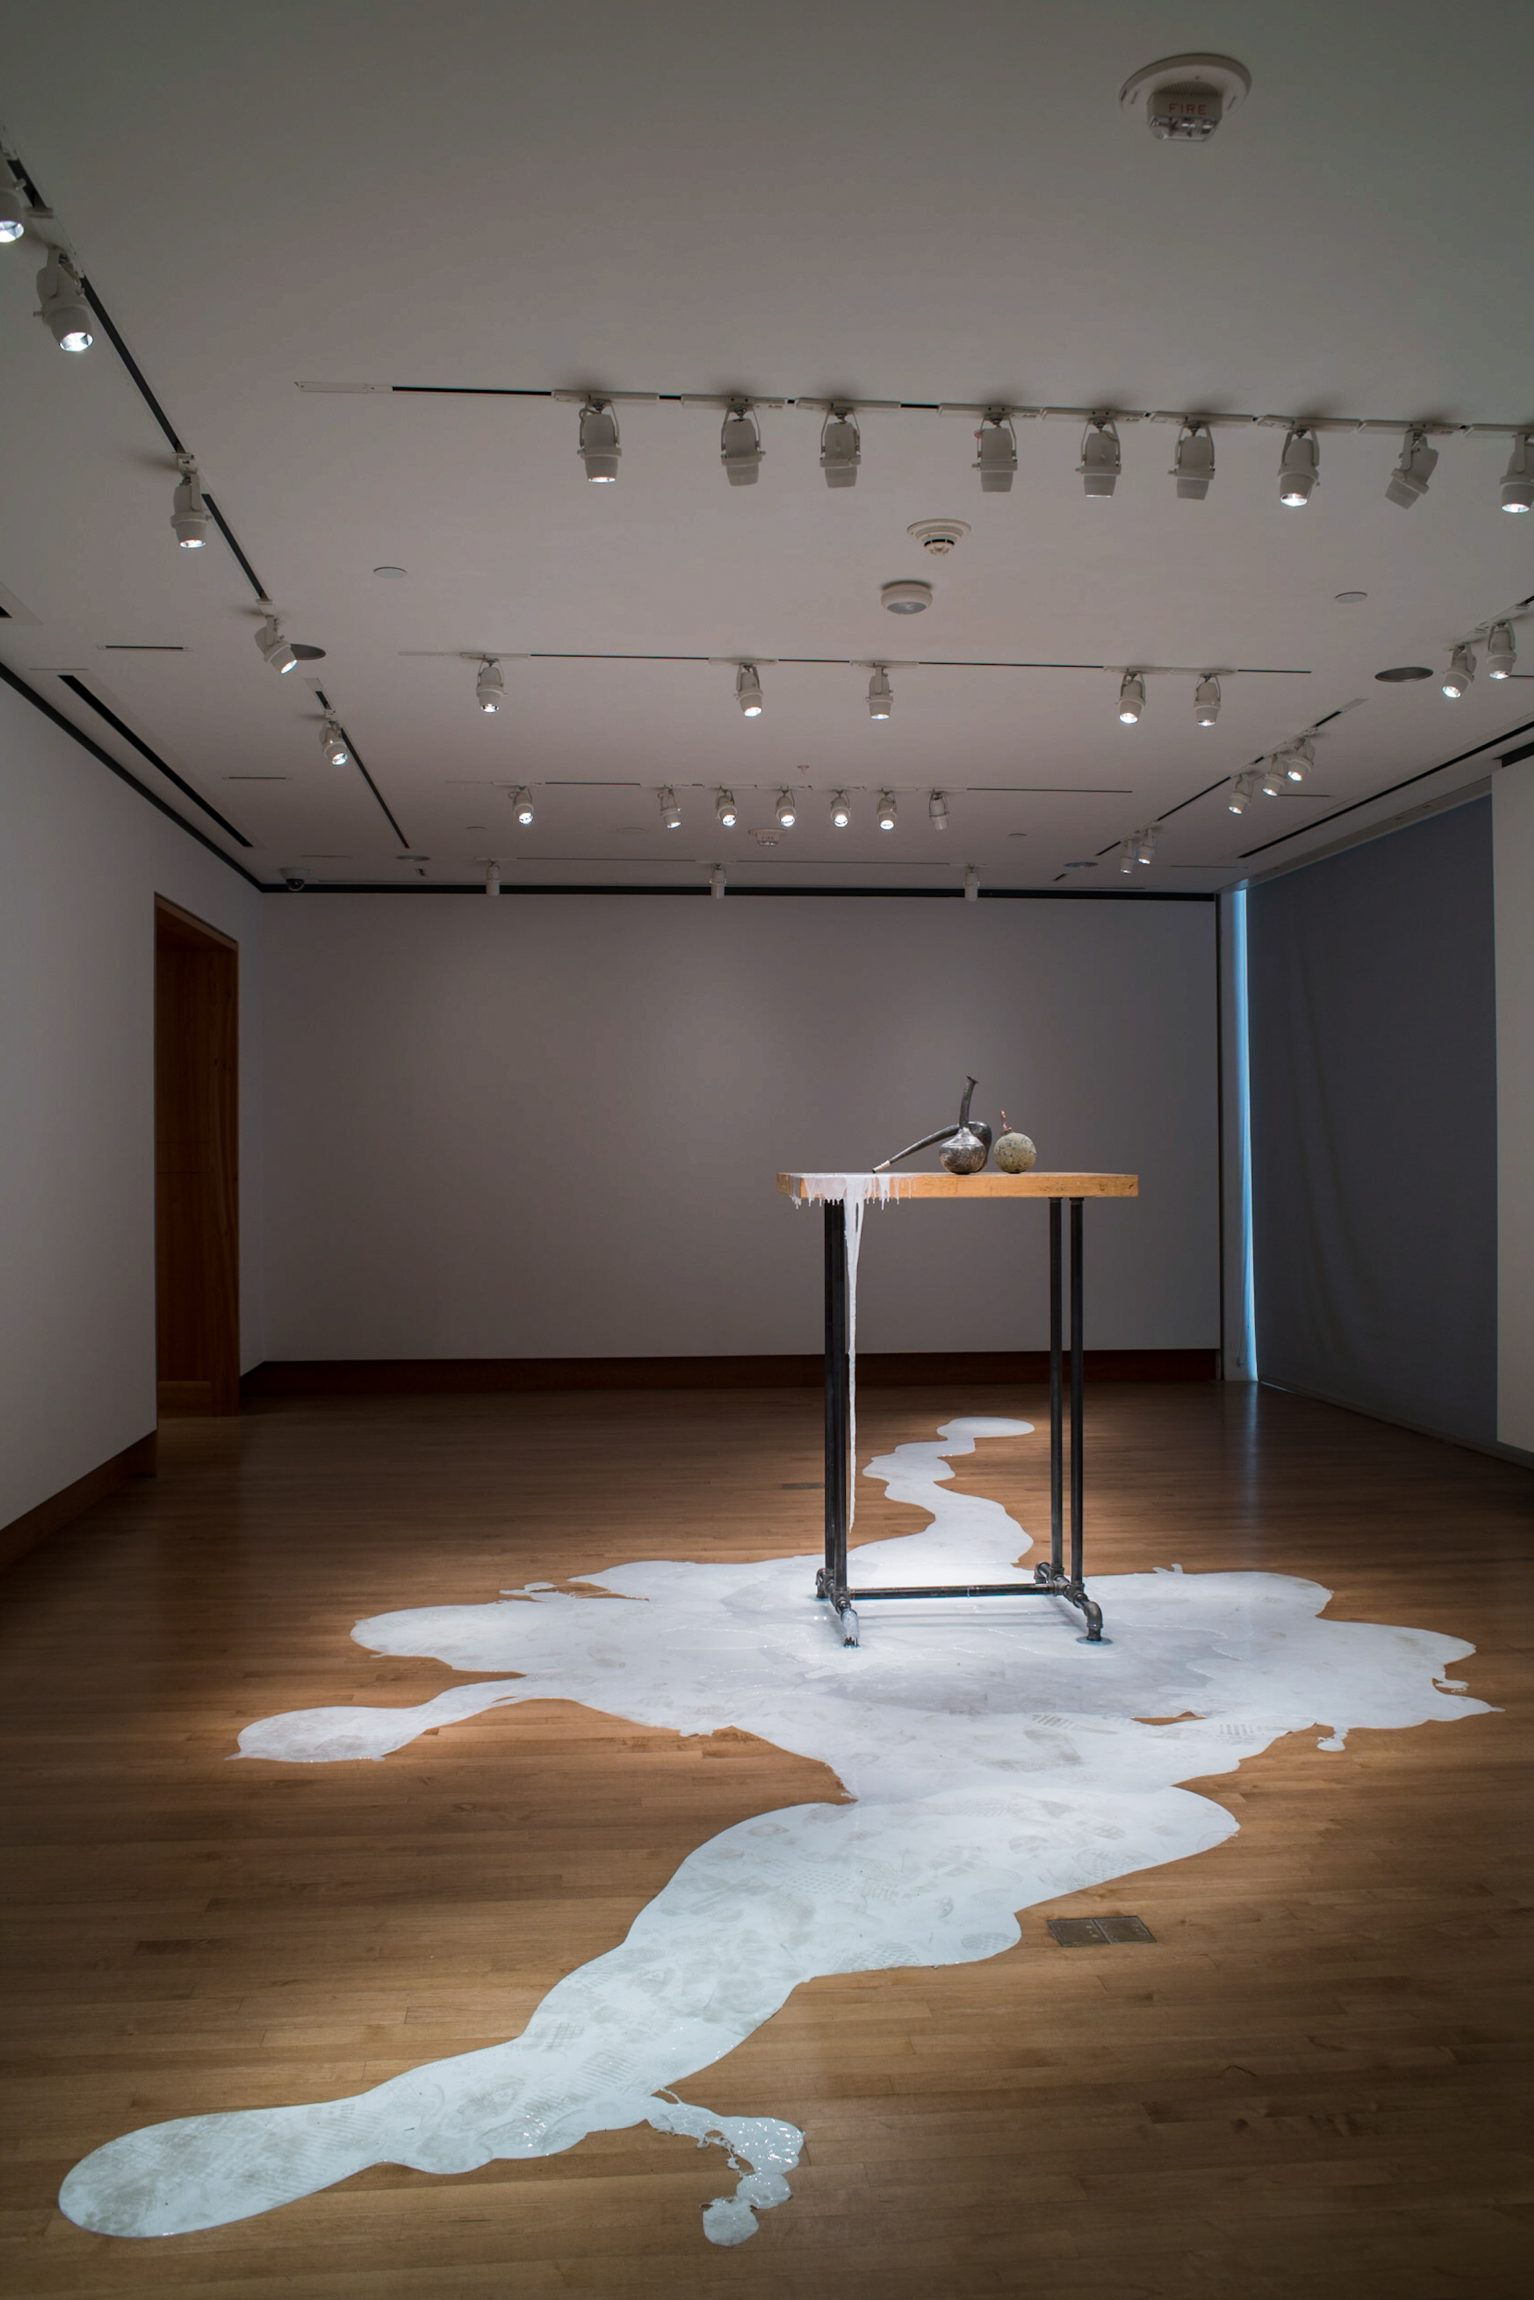 """Labware,"" 2018-2019, Pewter, copper, magnifying lens, silicone. Metalsmithing installation art from Chloe Darke's Master of Fine Arts exhibition Secrete, Augment, Testify at the Chazen Museum of Art, University of Wisconsin-Madison. Photography by Kyle Herrera."